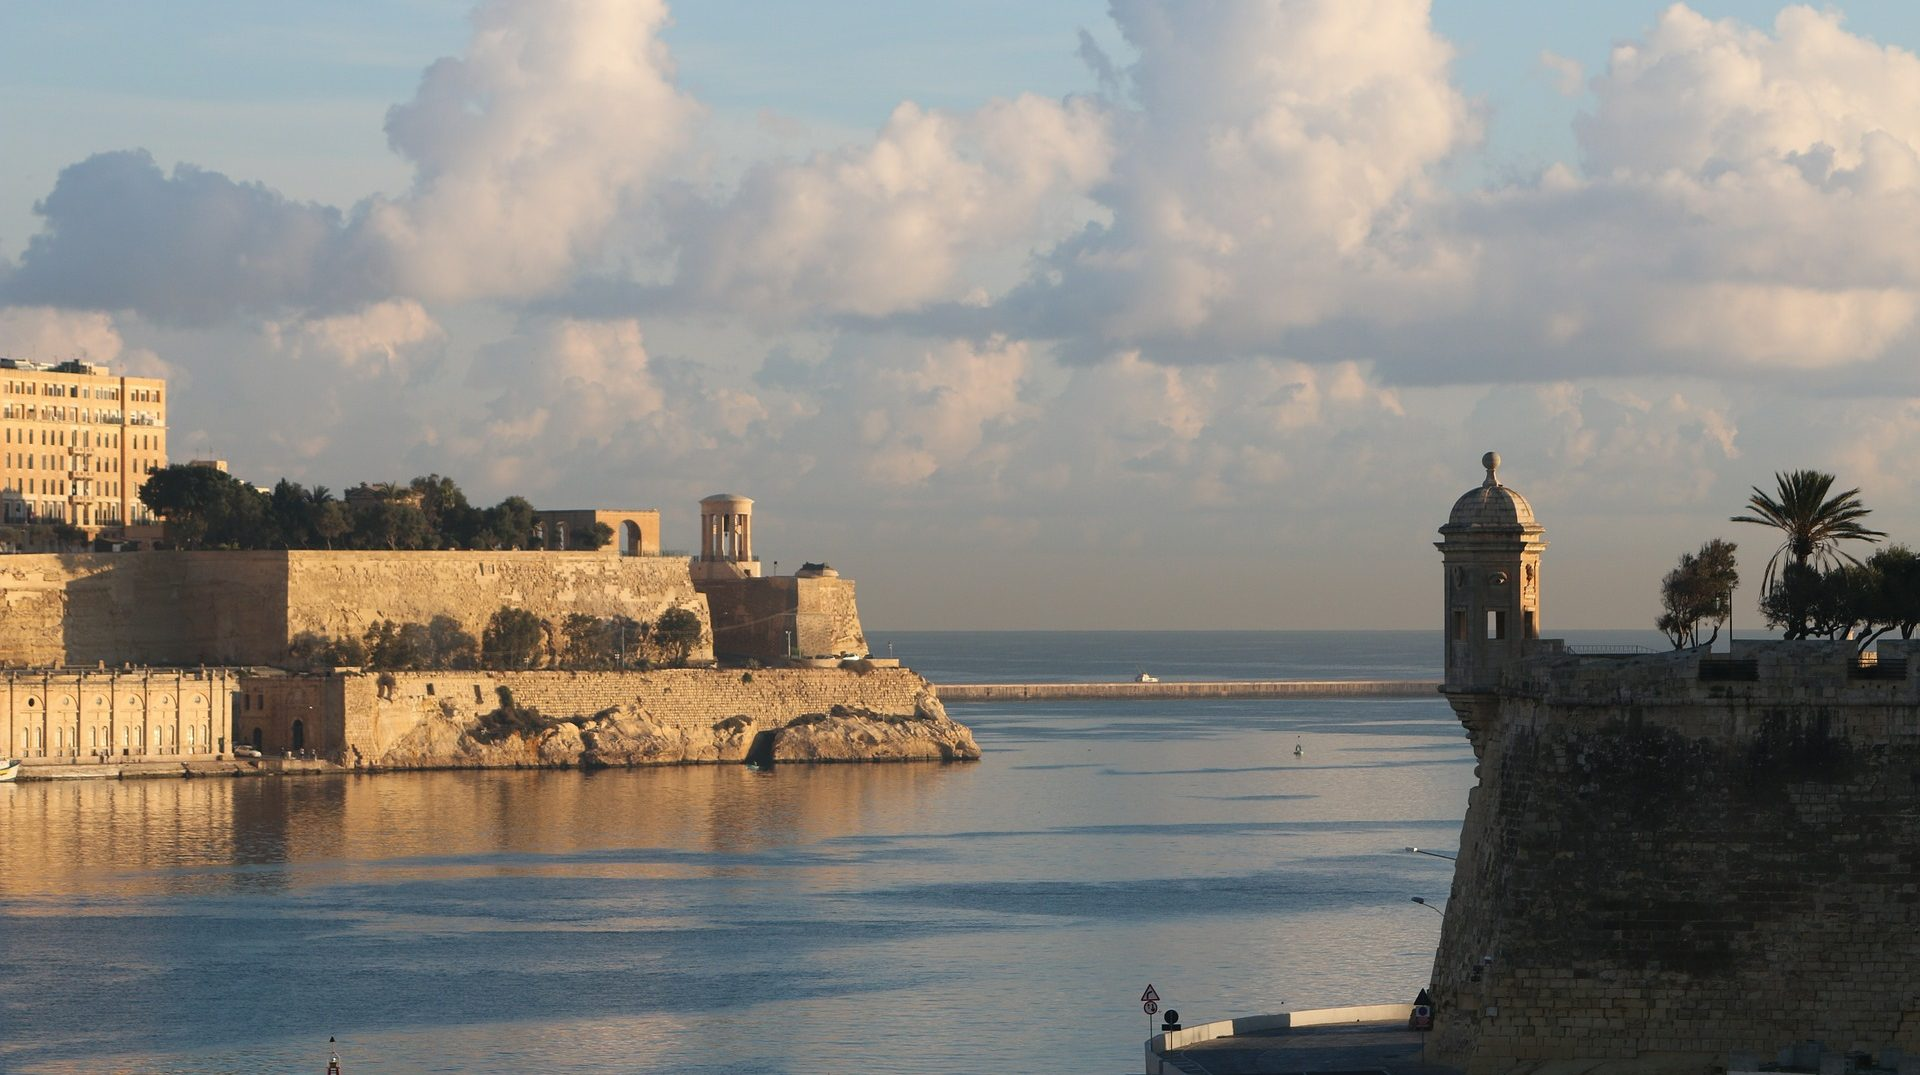 BLUEMED | A Basin of Research and Innovation for Sustainable Growth – Conference Presentations | April 18-19 | Malta